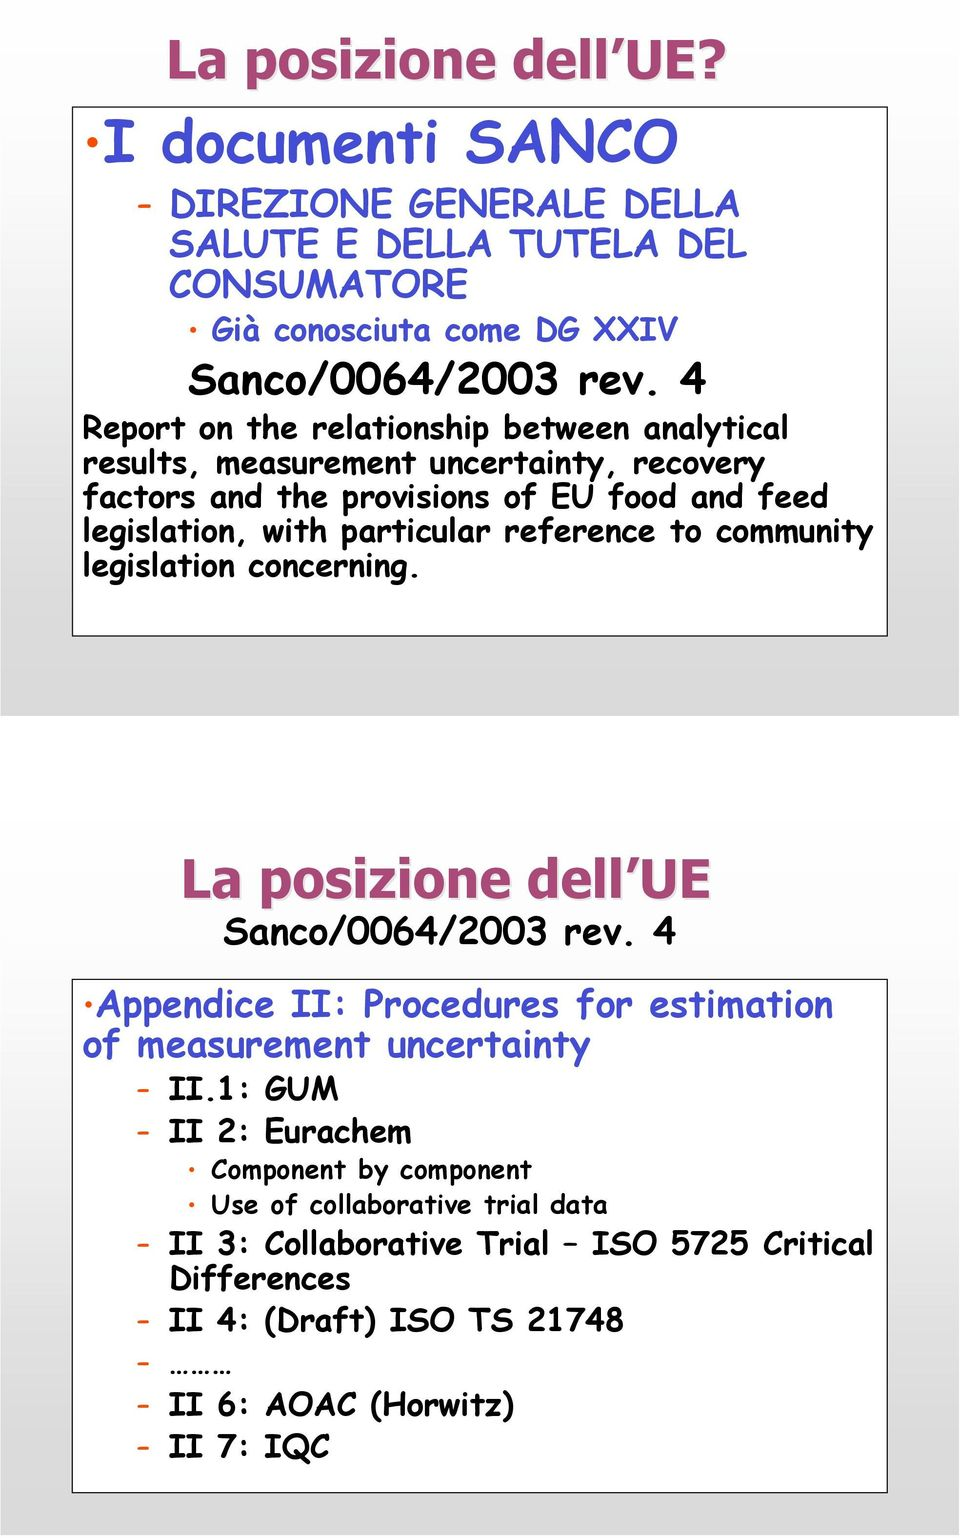 reference to community legislation concerning. La posizione dell UE Sanco/0064/003 rev. 4 Appendice II: Procedures for estimation of measurement uncertainty II.